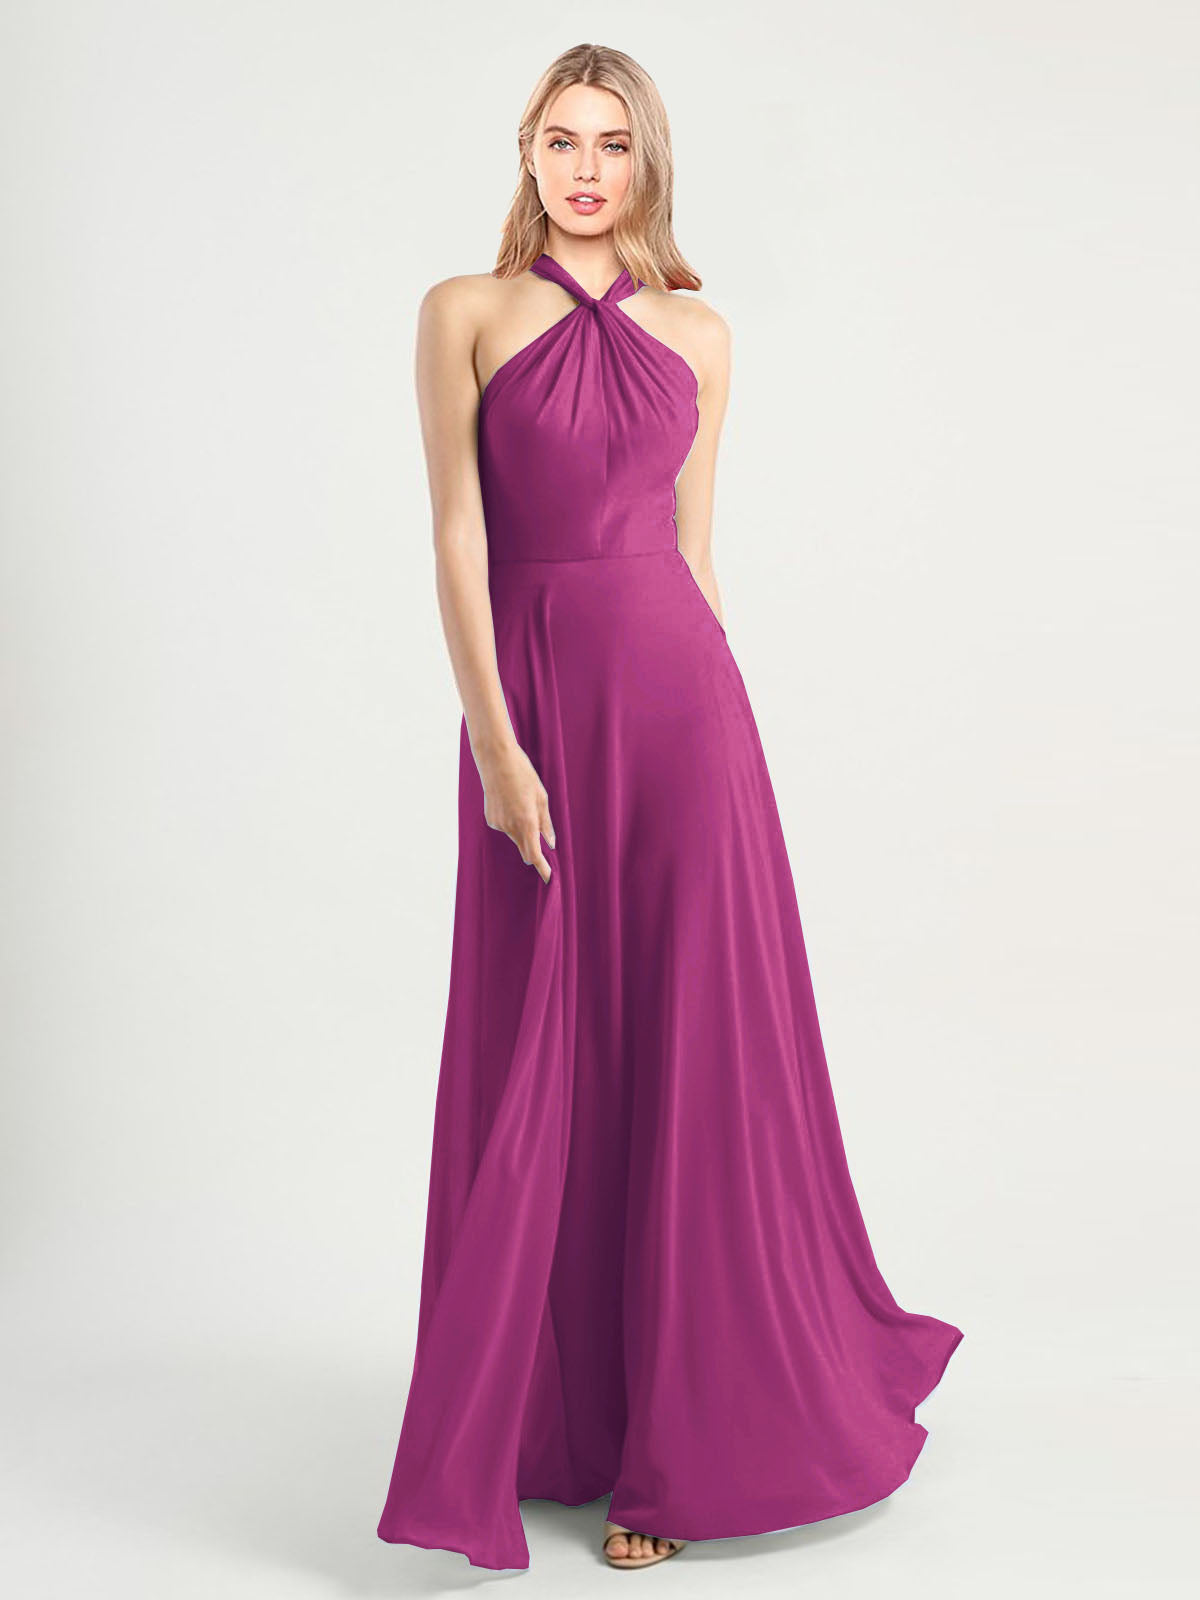 Long A-Line High Neck, Halter Sleeveless Wild Berry Chiffon Bridesmaid Dress Yoli